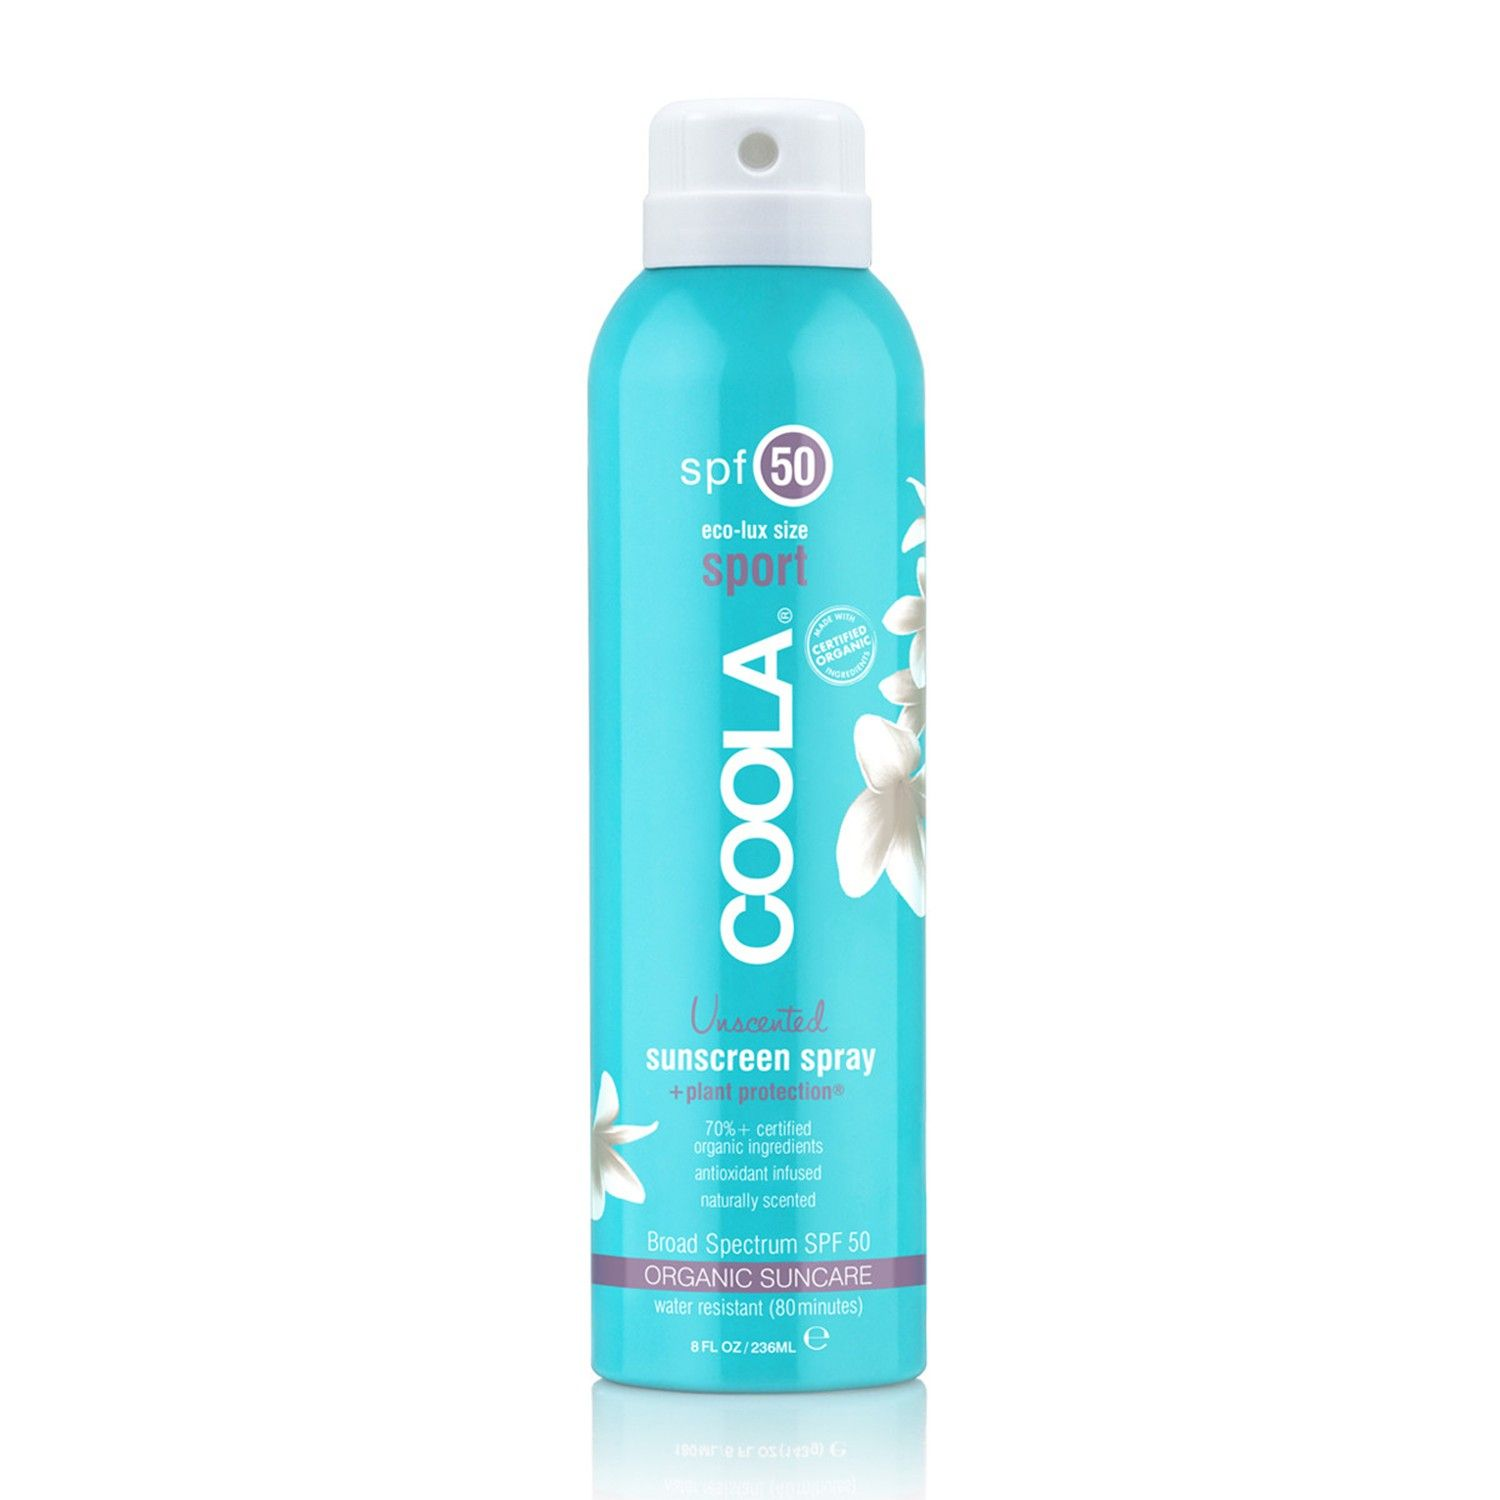 Buy COOLA spf 50 eco-lux size sport Unscented sunscreen spray (8 fl oz / 236 ml)